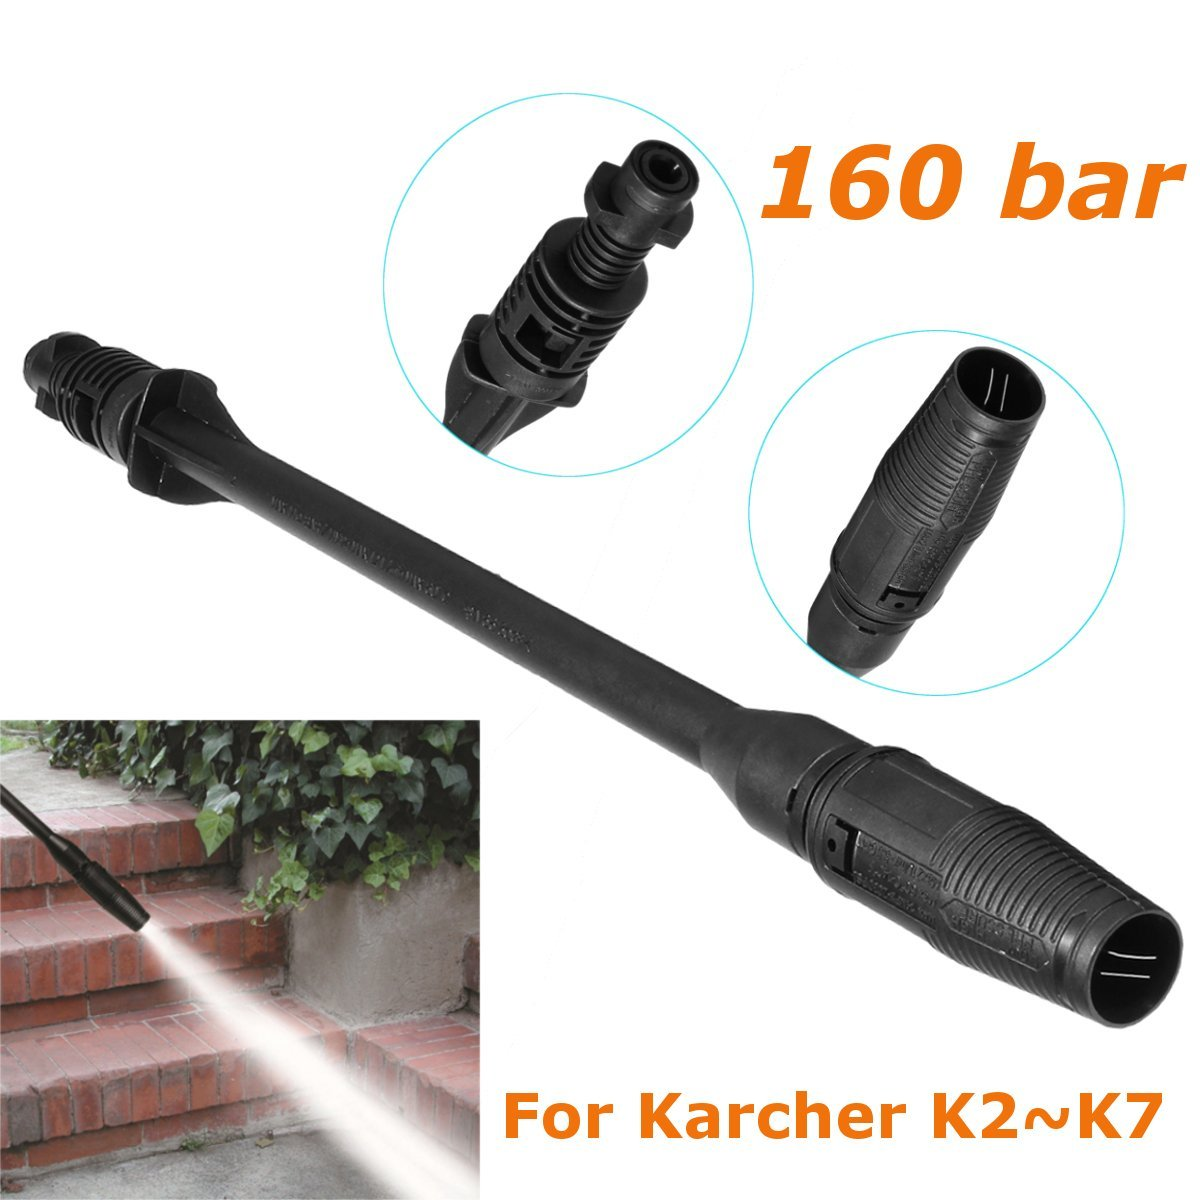 SAFETYON Car Washer Water Jet High Pressure Power Washer 160bar Spray Nozzle Watering Gun Home Garden Hose Pipe Wand Attachment Best Choice Cleaning